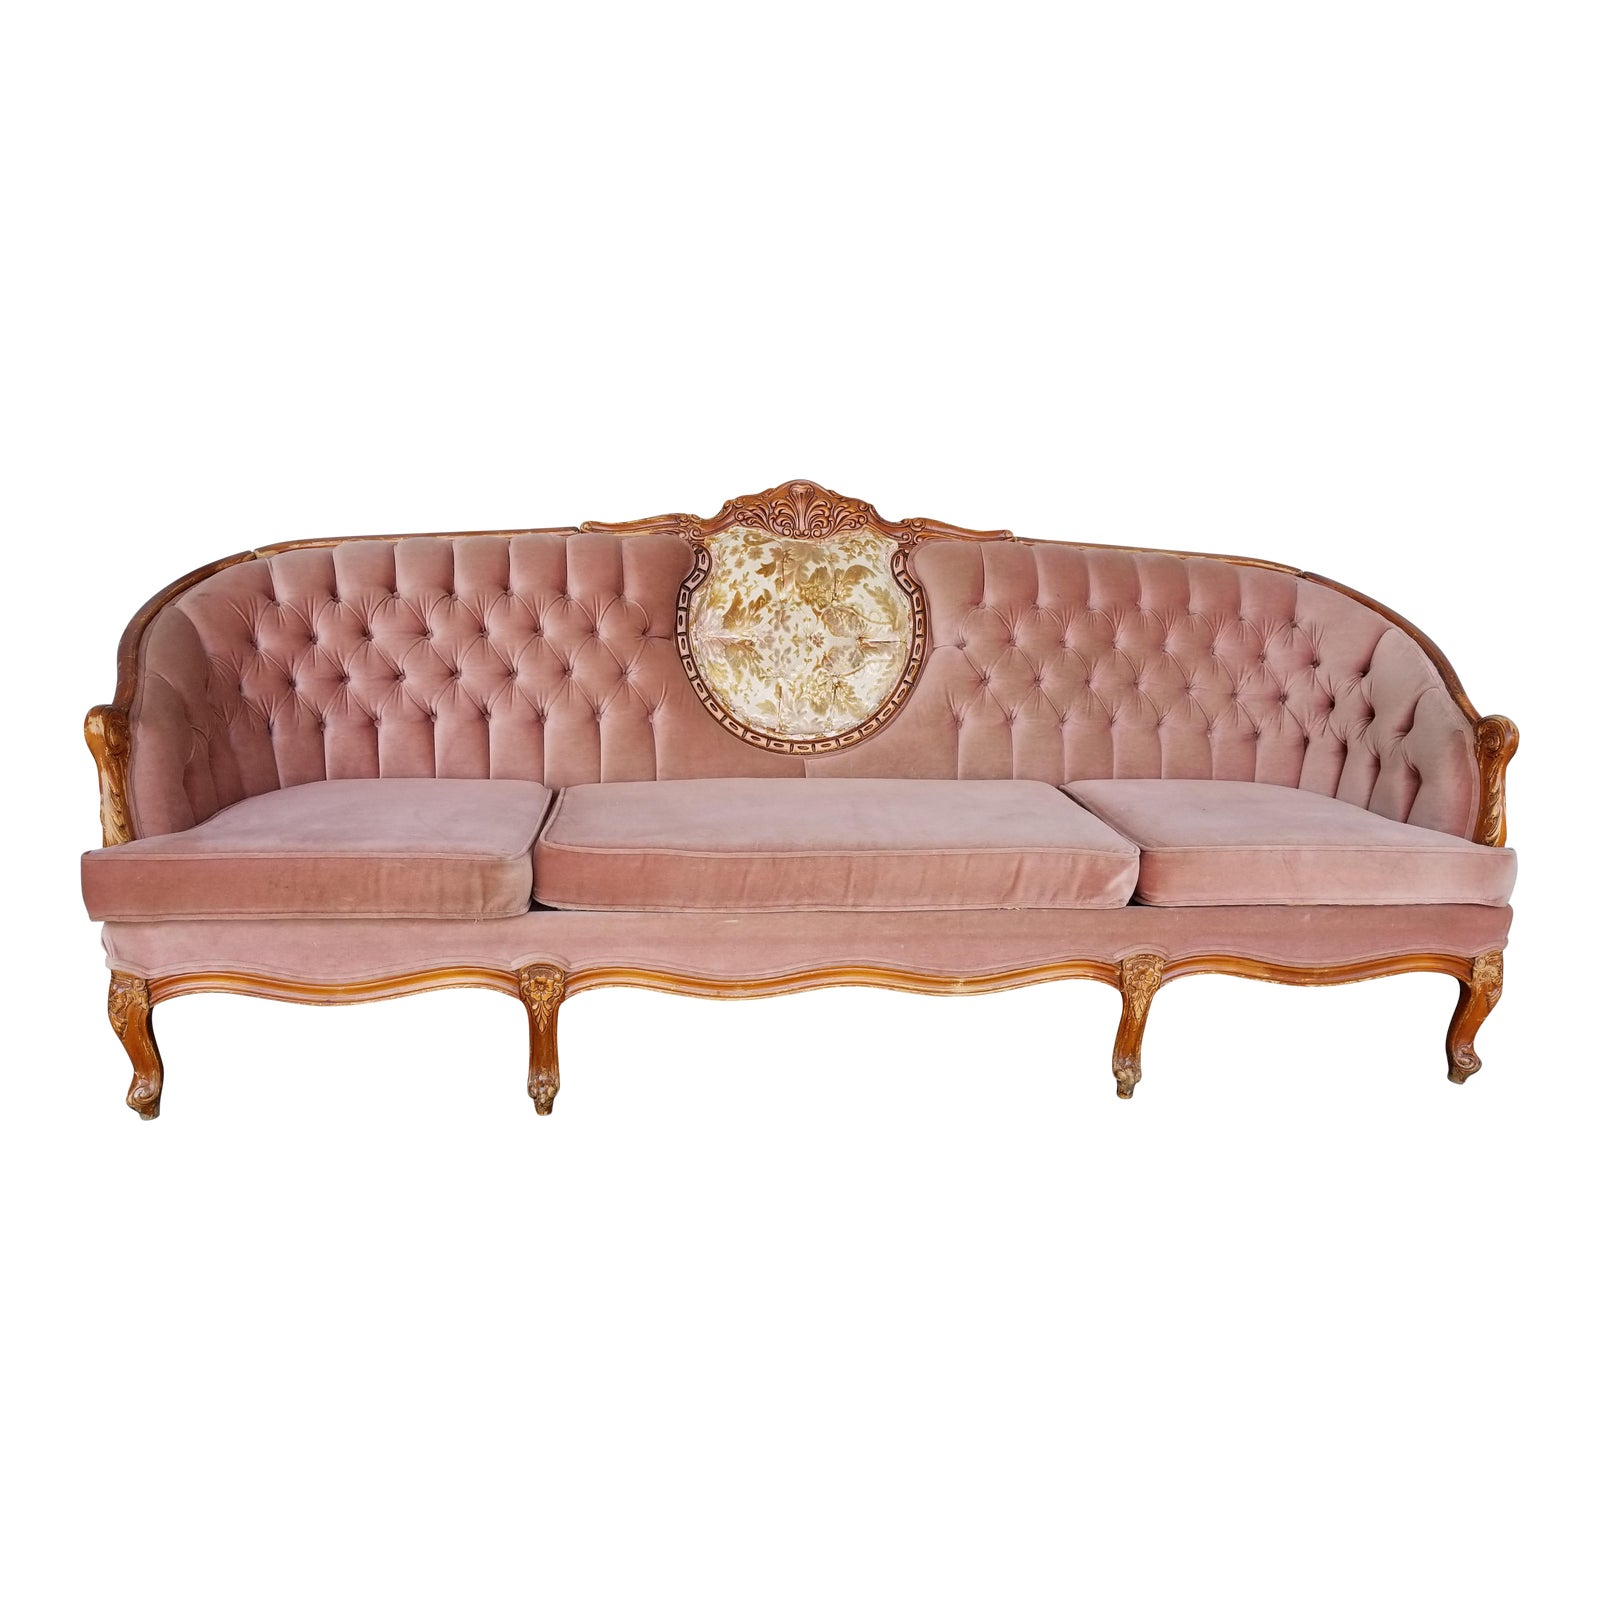 Vintage French Provincial Pink Velvet Couch  Hollywood Regency Rose